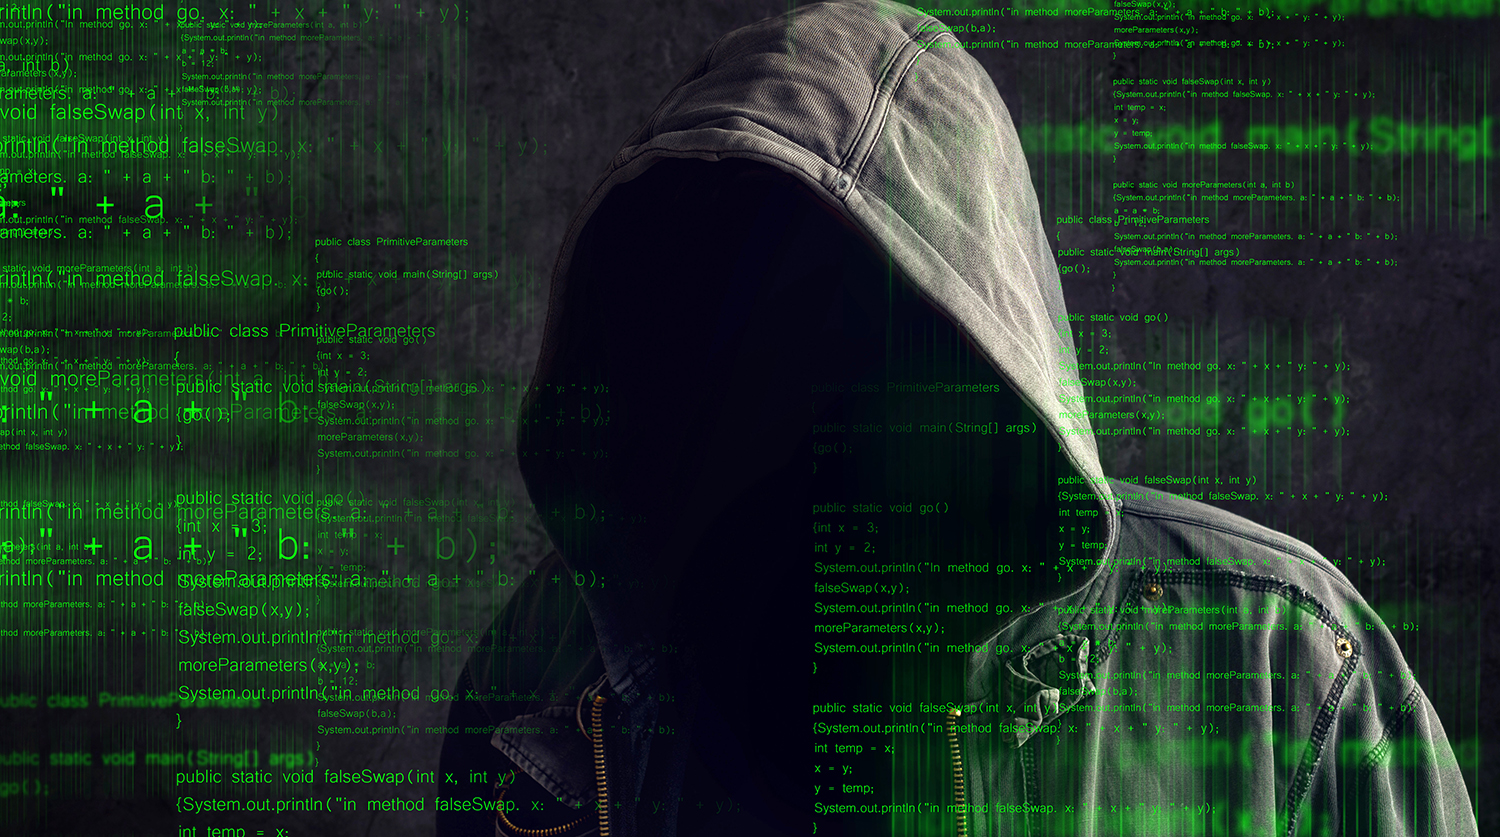 F5 Labs research reveals Chinese hackers lead attacks on IoT